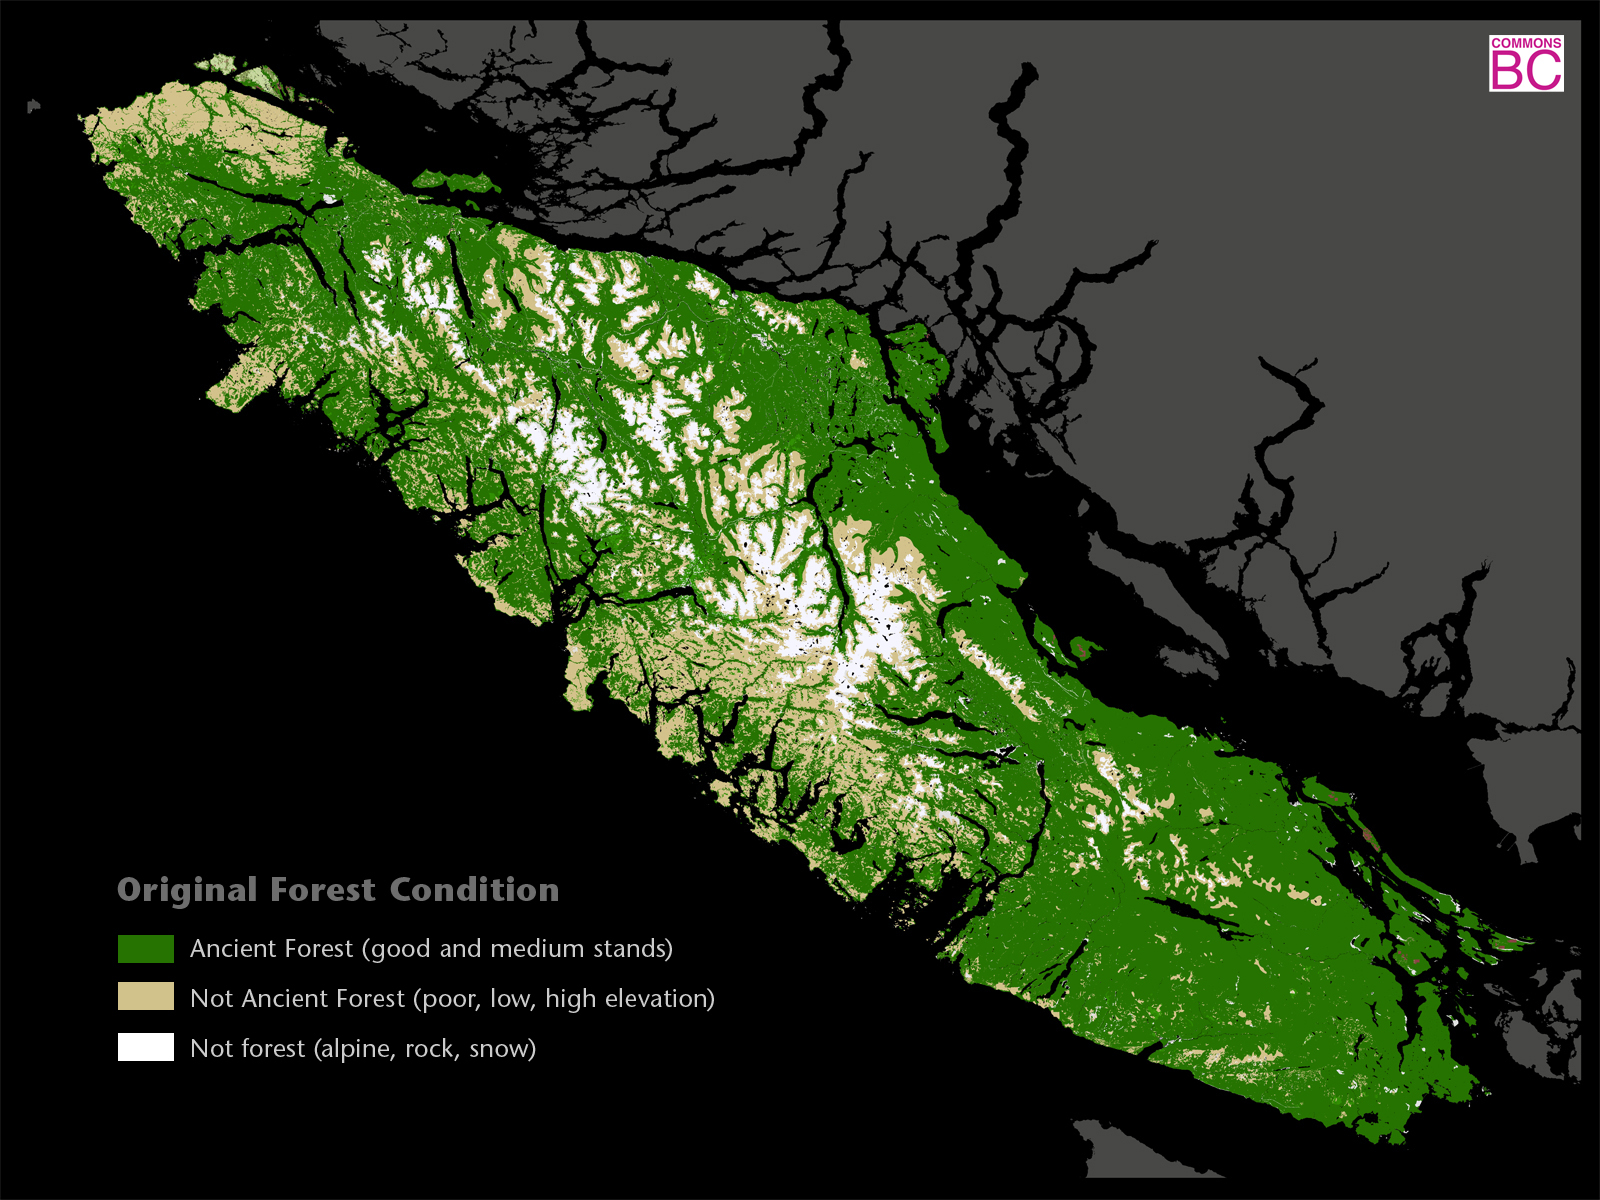 BC old growth map - Supplied by Commons BC